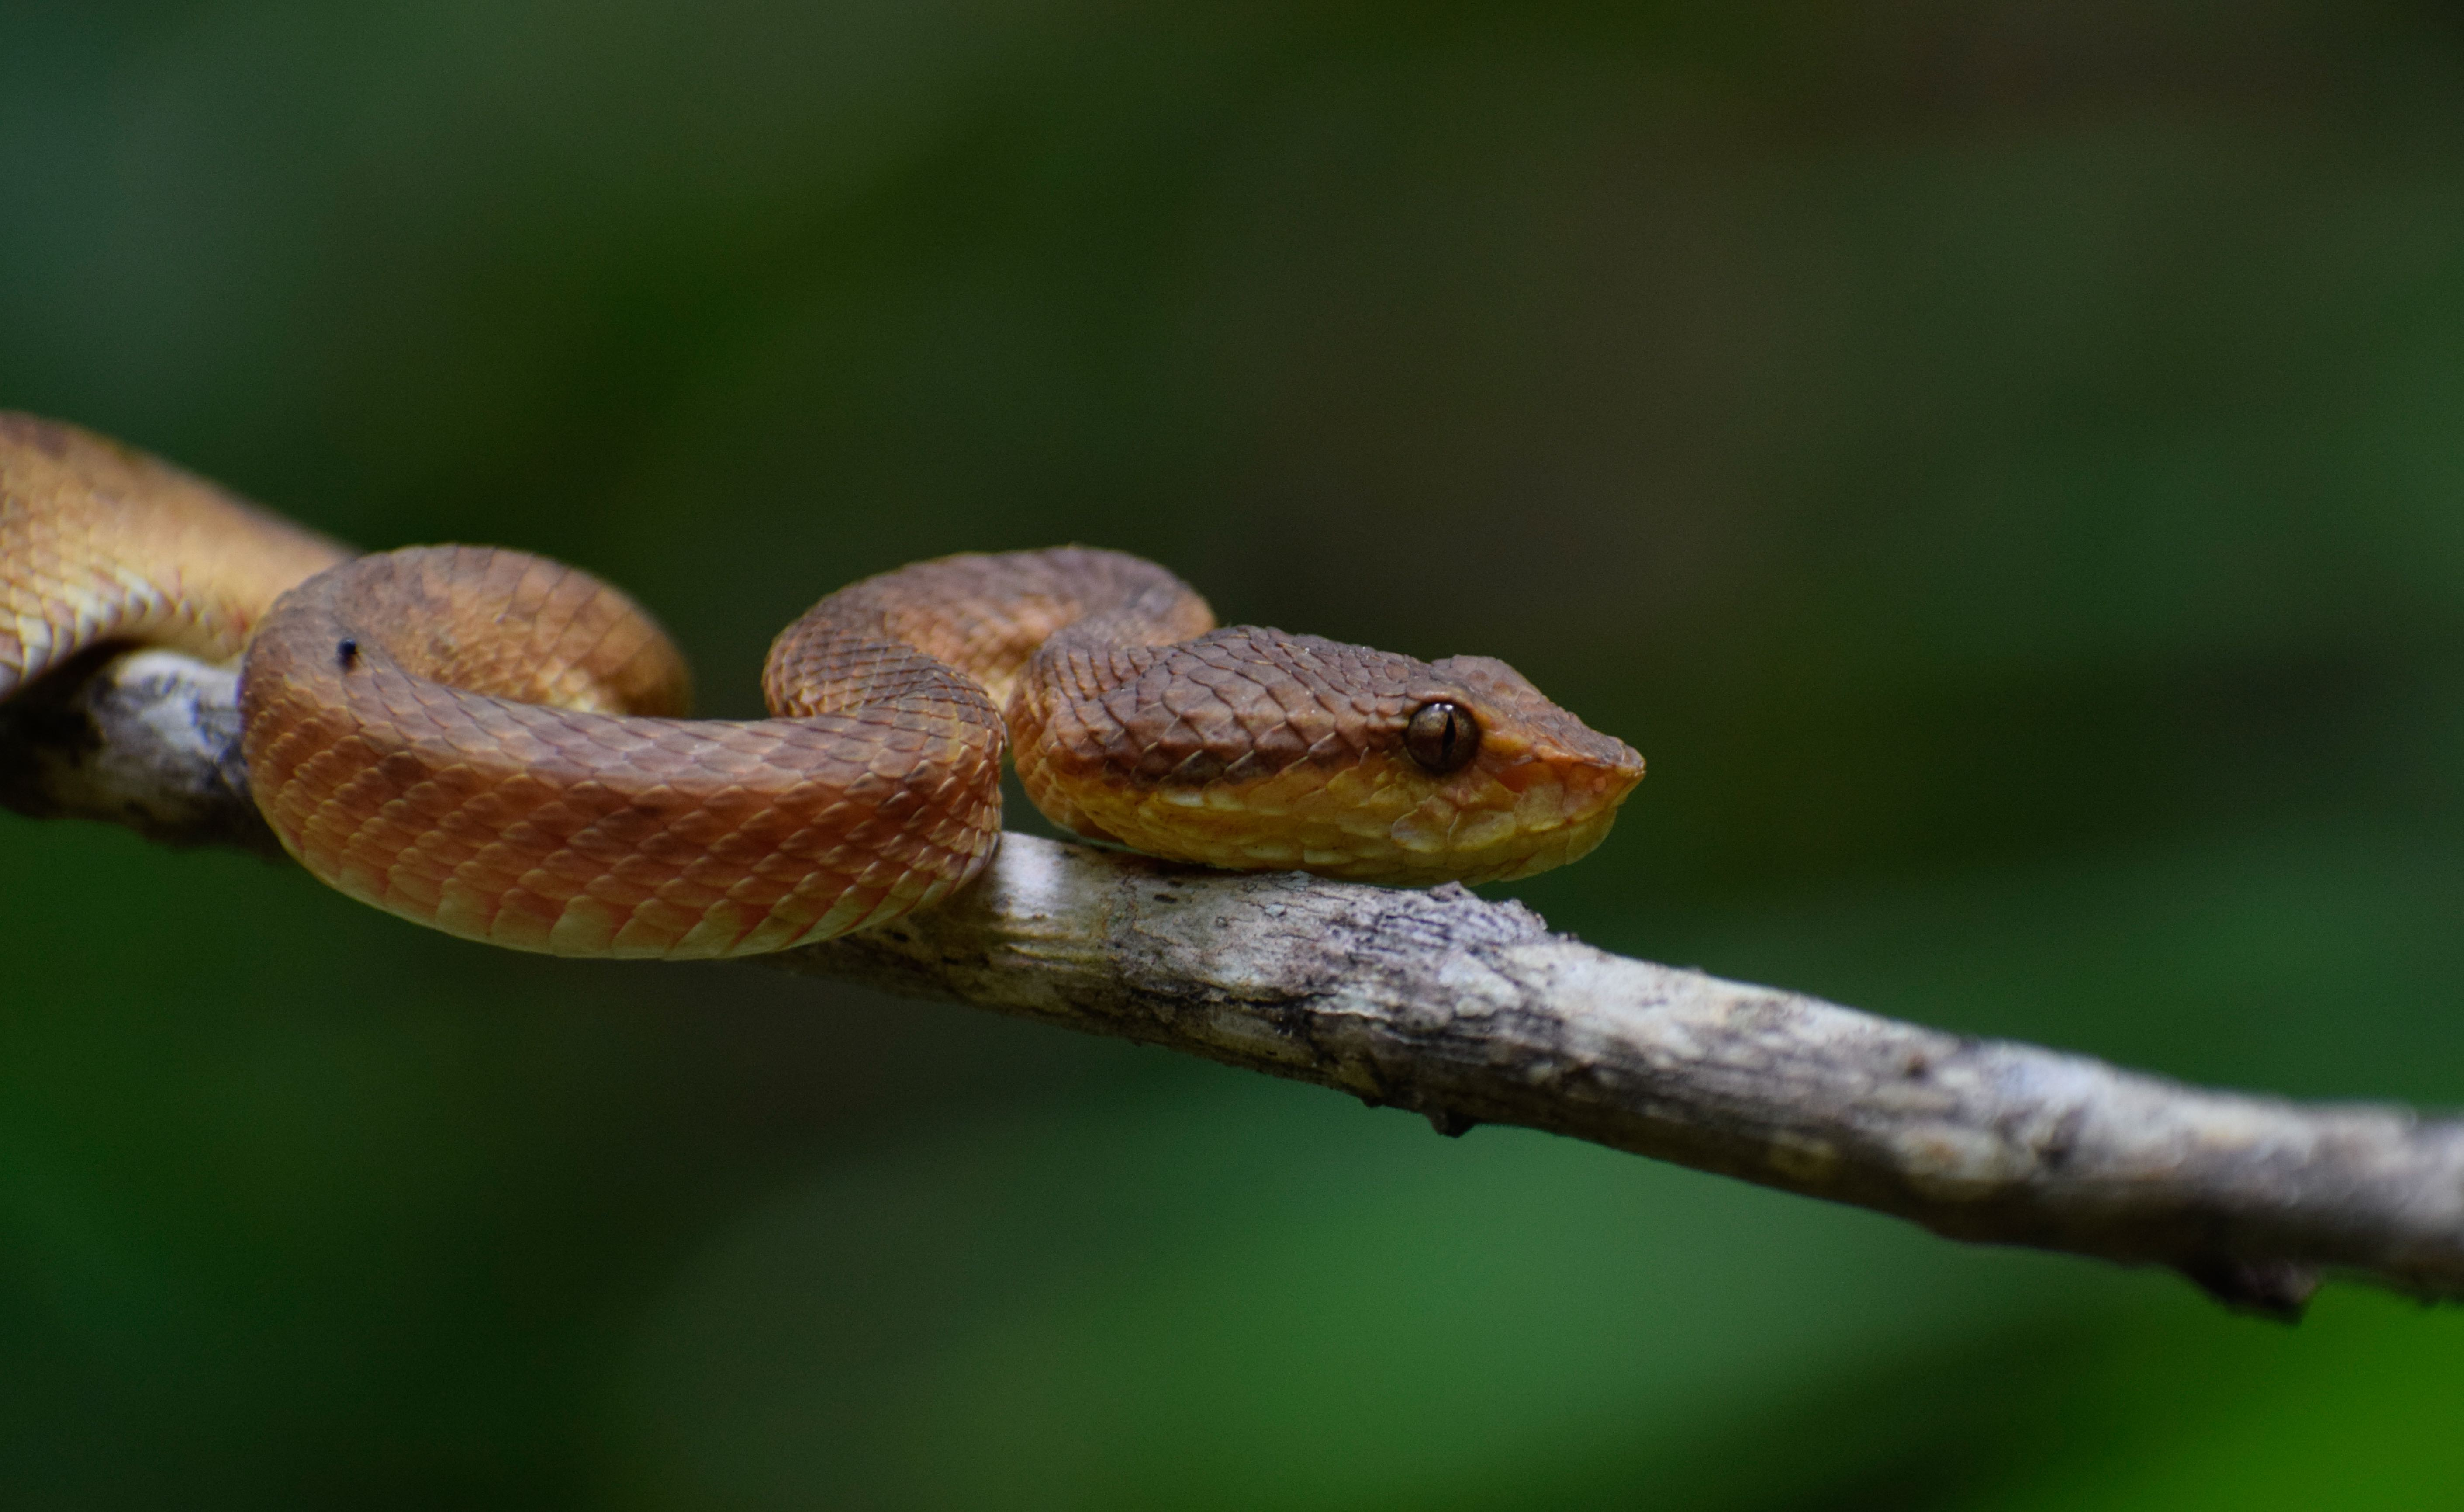 Like with other snakes found in India, few scientific studies have been done on the Malabar pit viper. As a result very little is known about the significance of its colour variations, or its habitat, diet, behaviour, and threats. Photo: Amal U S – CC BY-SA 4.0